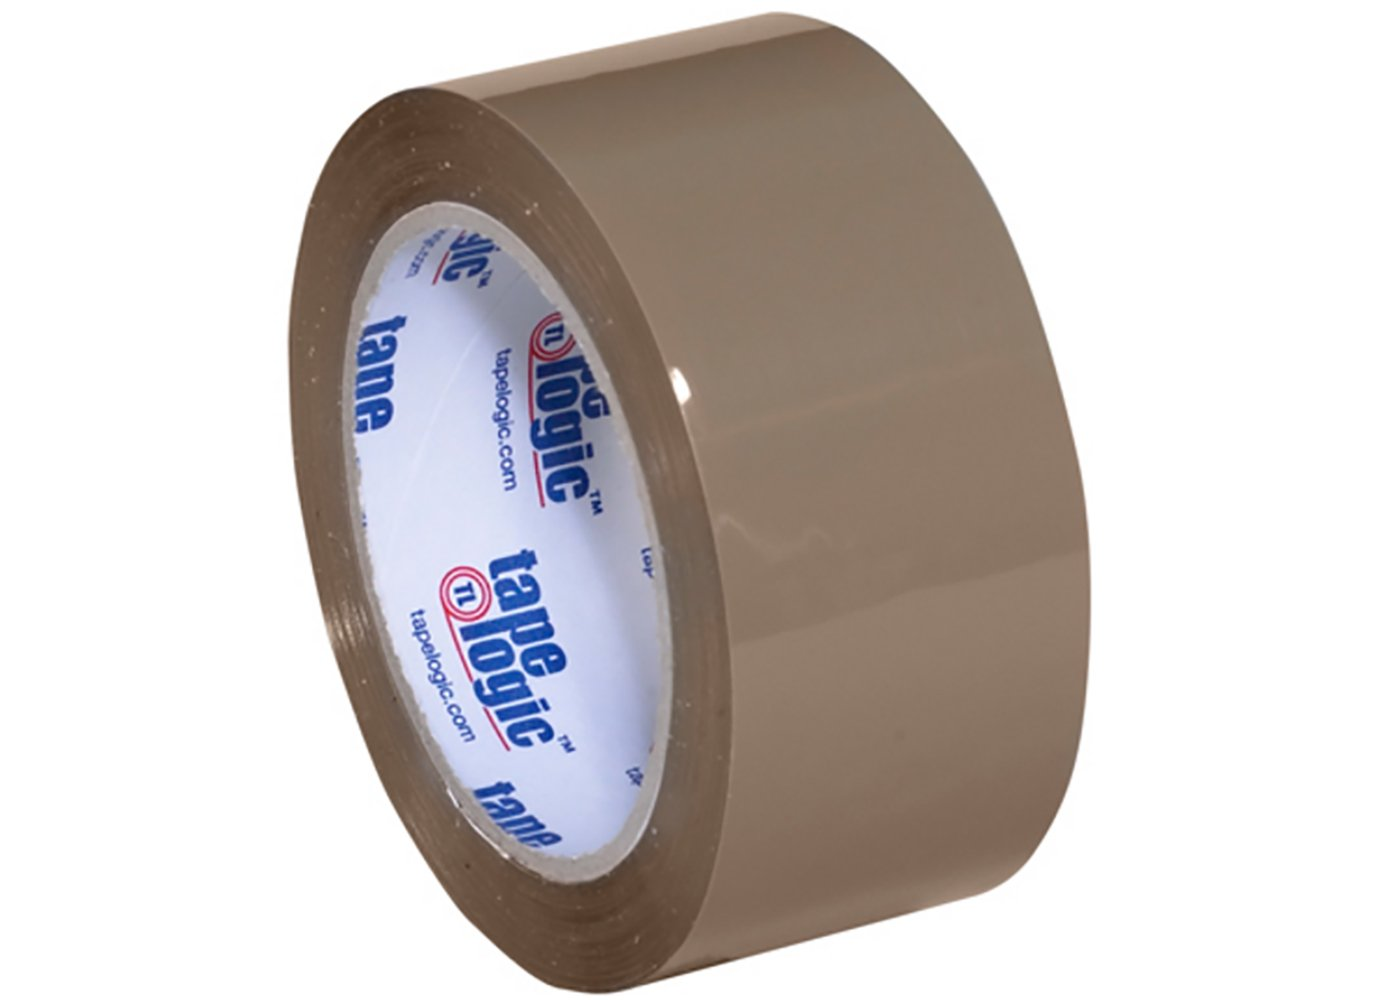 Pack of 12 2 x 55 yd RetailSource T901350Tx12 Tape Logic #350 Industrial Tape RetailSource Ltd 2 x 55 yd. Tan